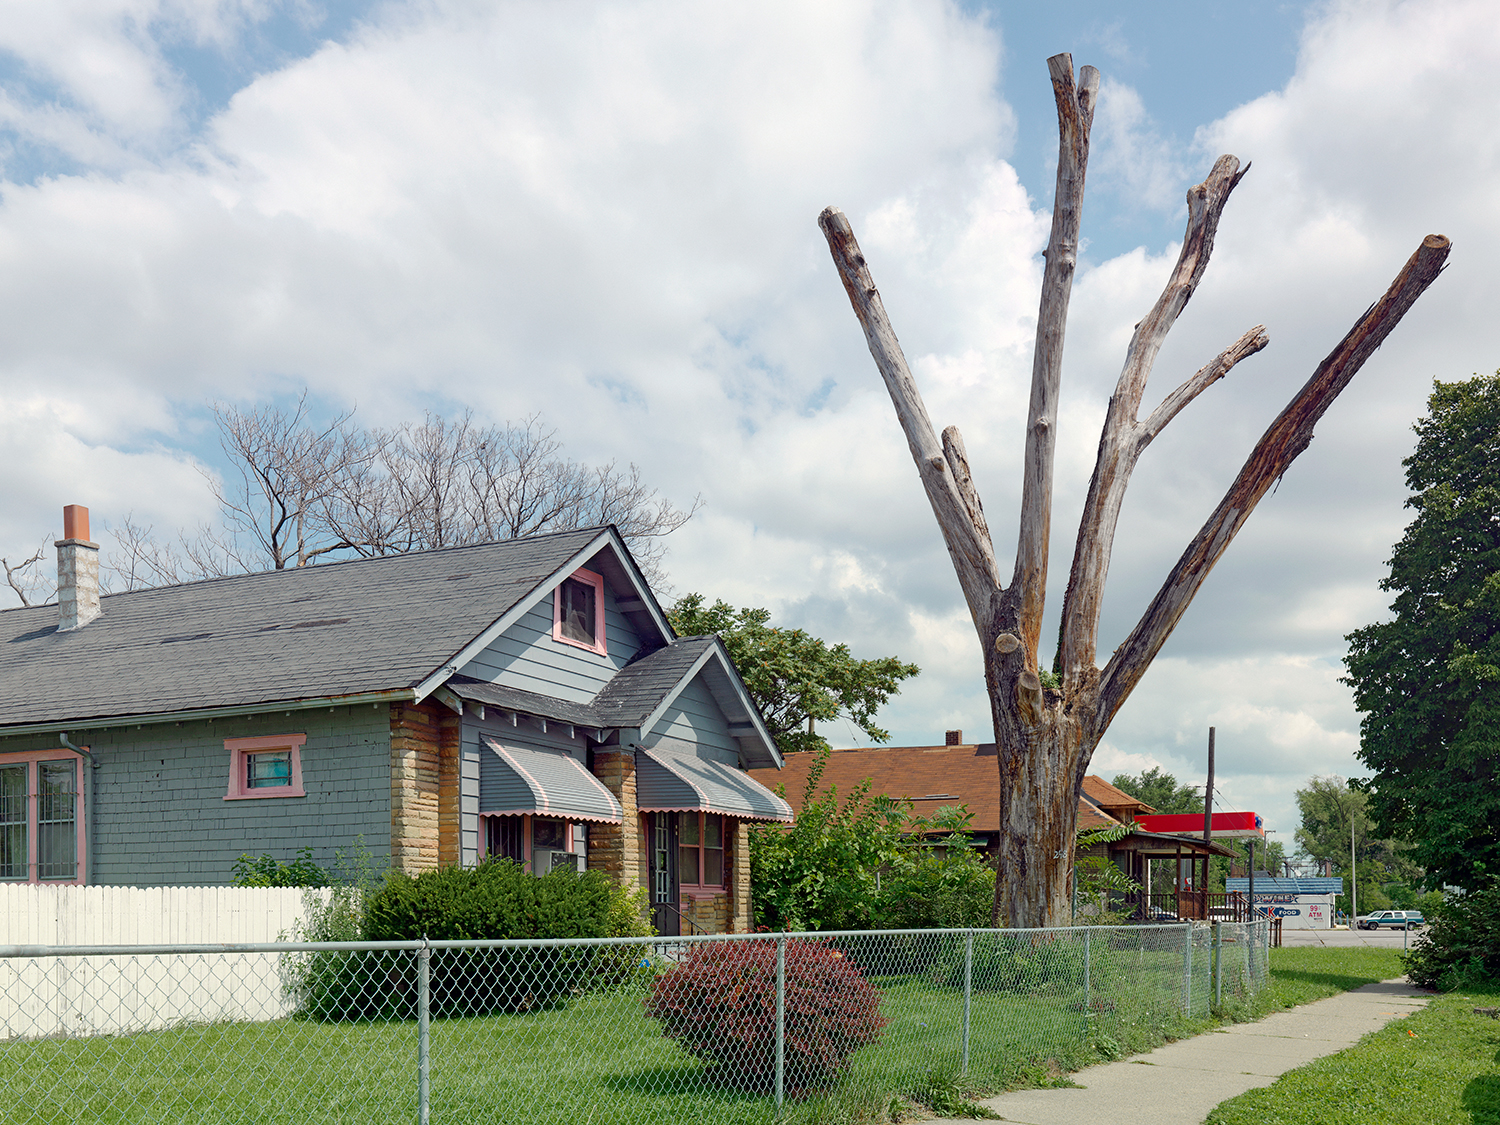 Tree-Stump-21,-Detroit-2011.jpg